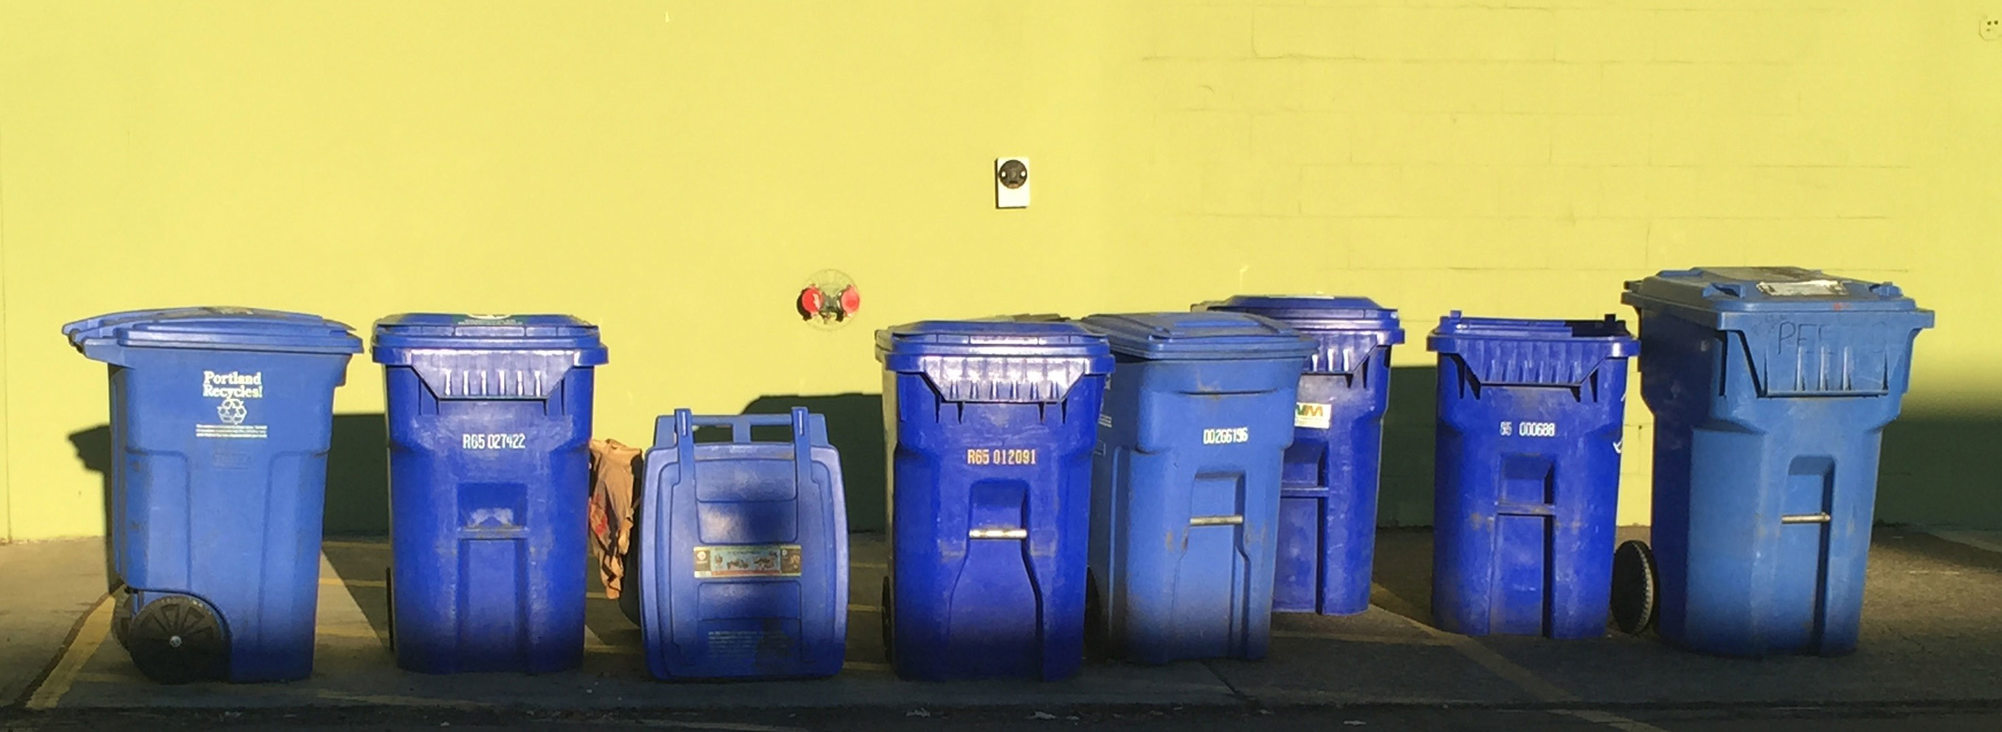 blue recycling bins against a yellow wall